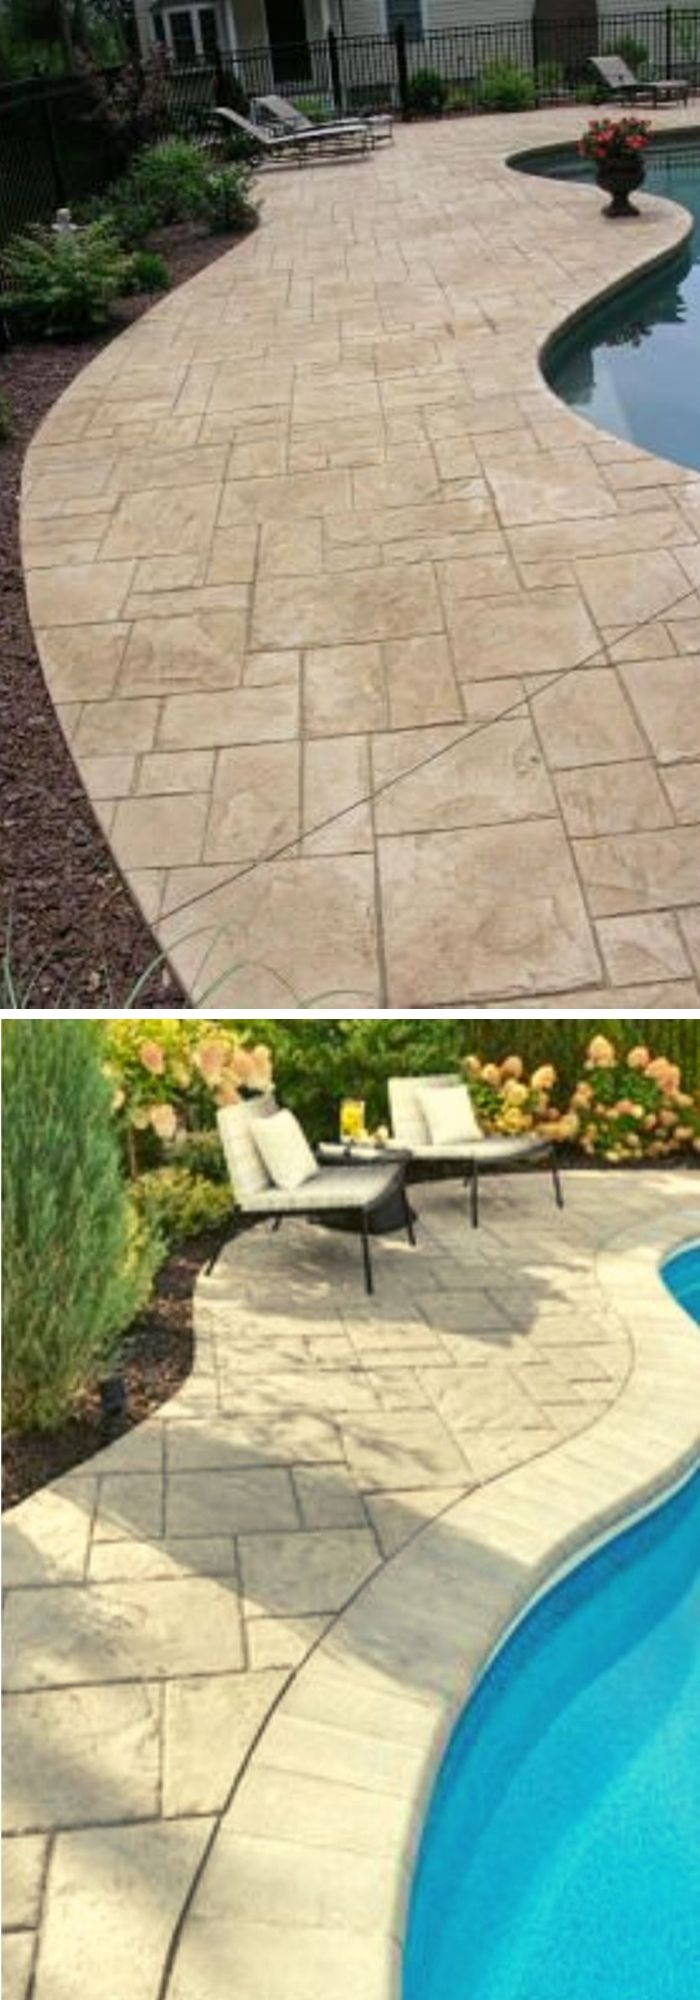 Stamped concrete patio with pool